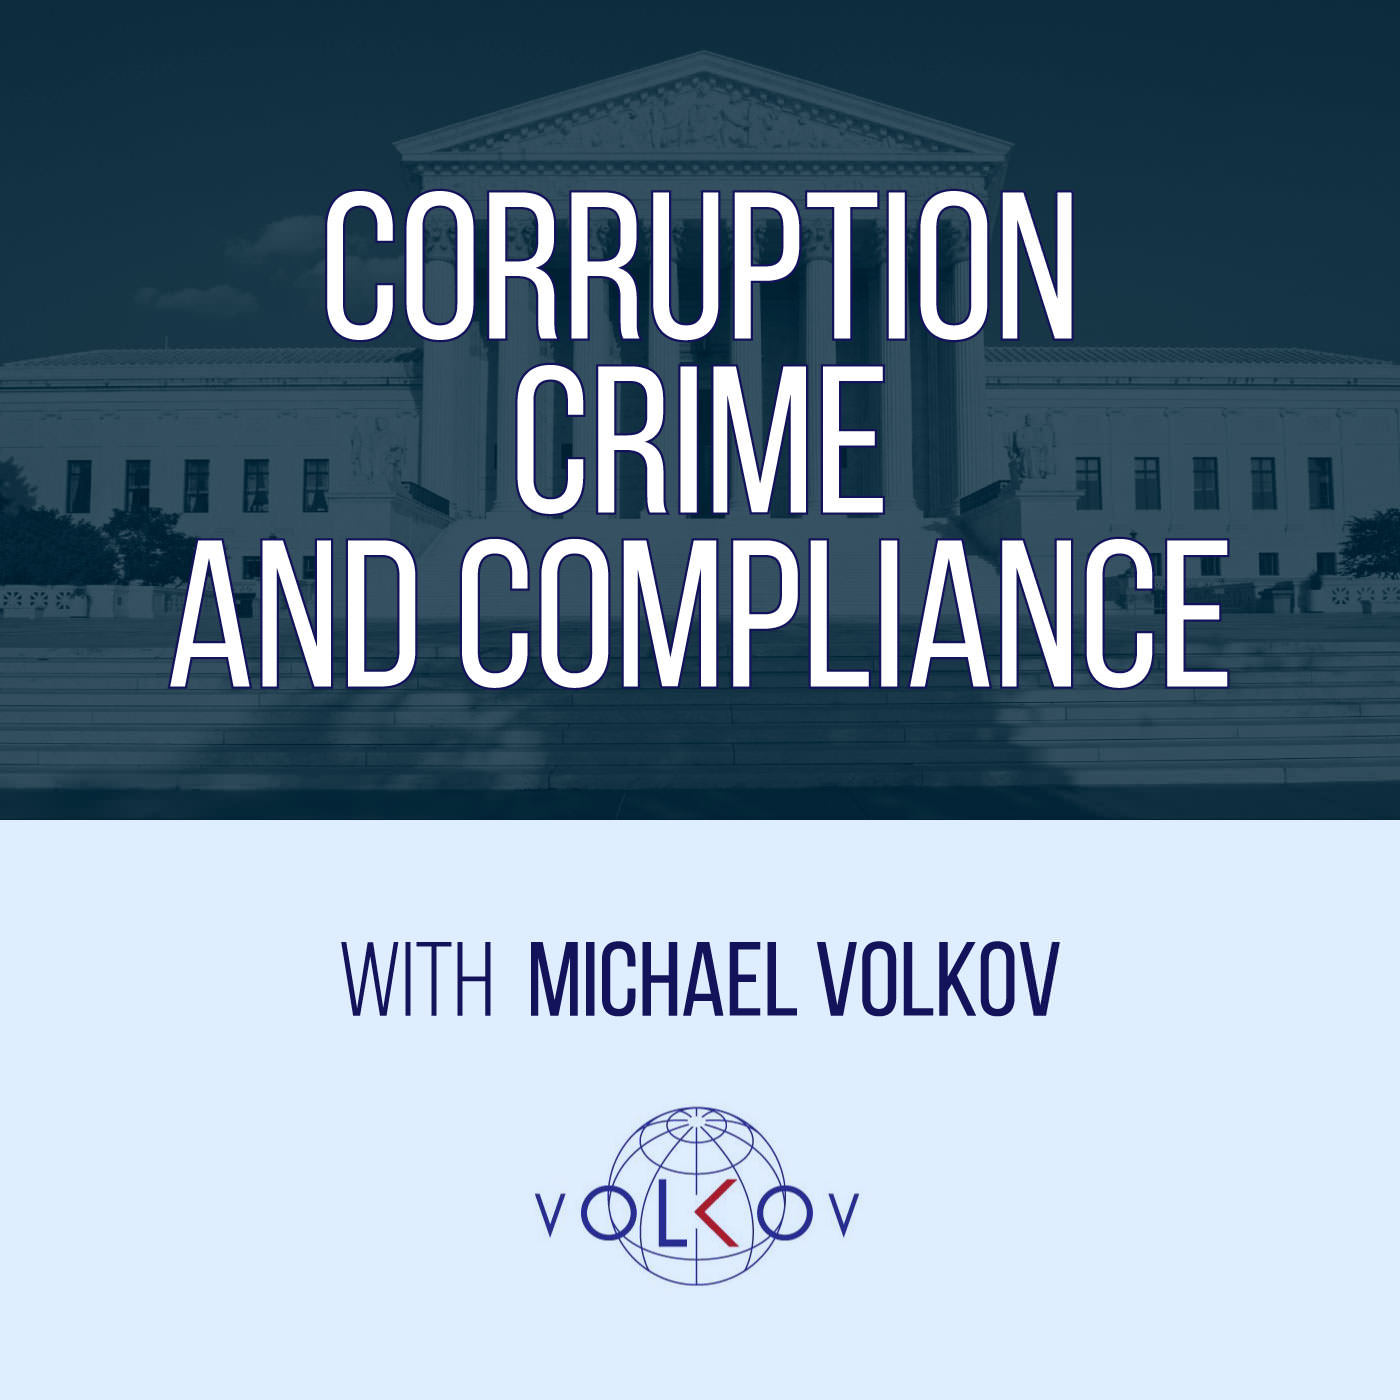 Corruption, Crime and Compliance with Michael Volkov